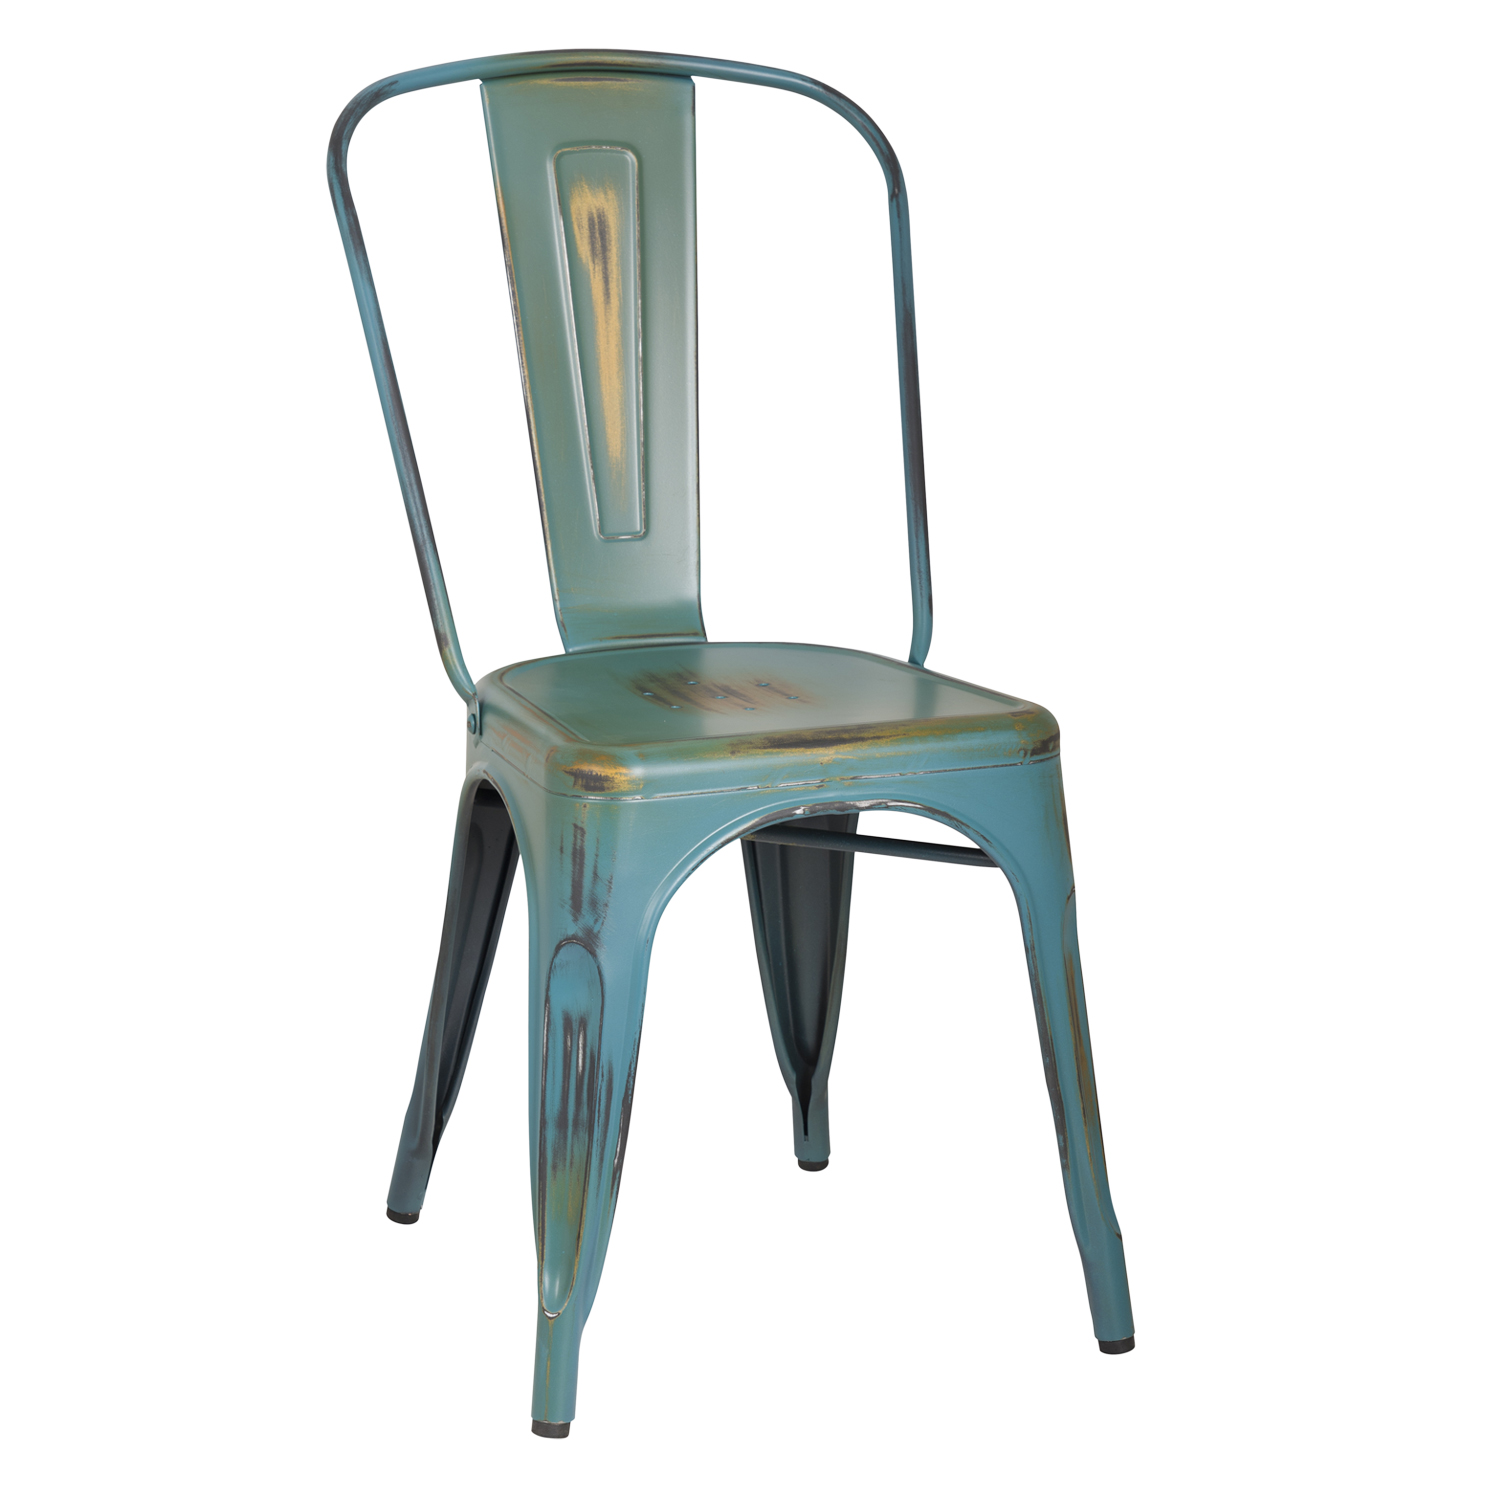 decenthome distressed green stacking dining chairs  ch  - stackable distressed metal dining chairs